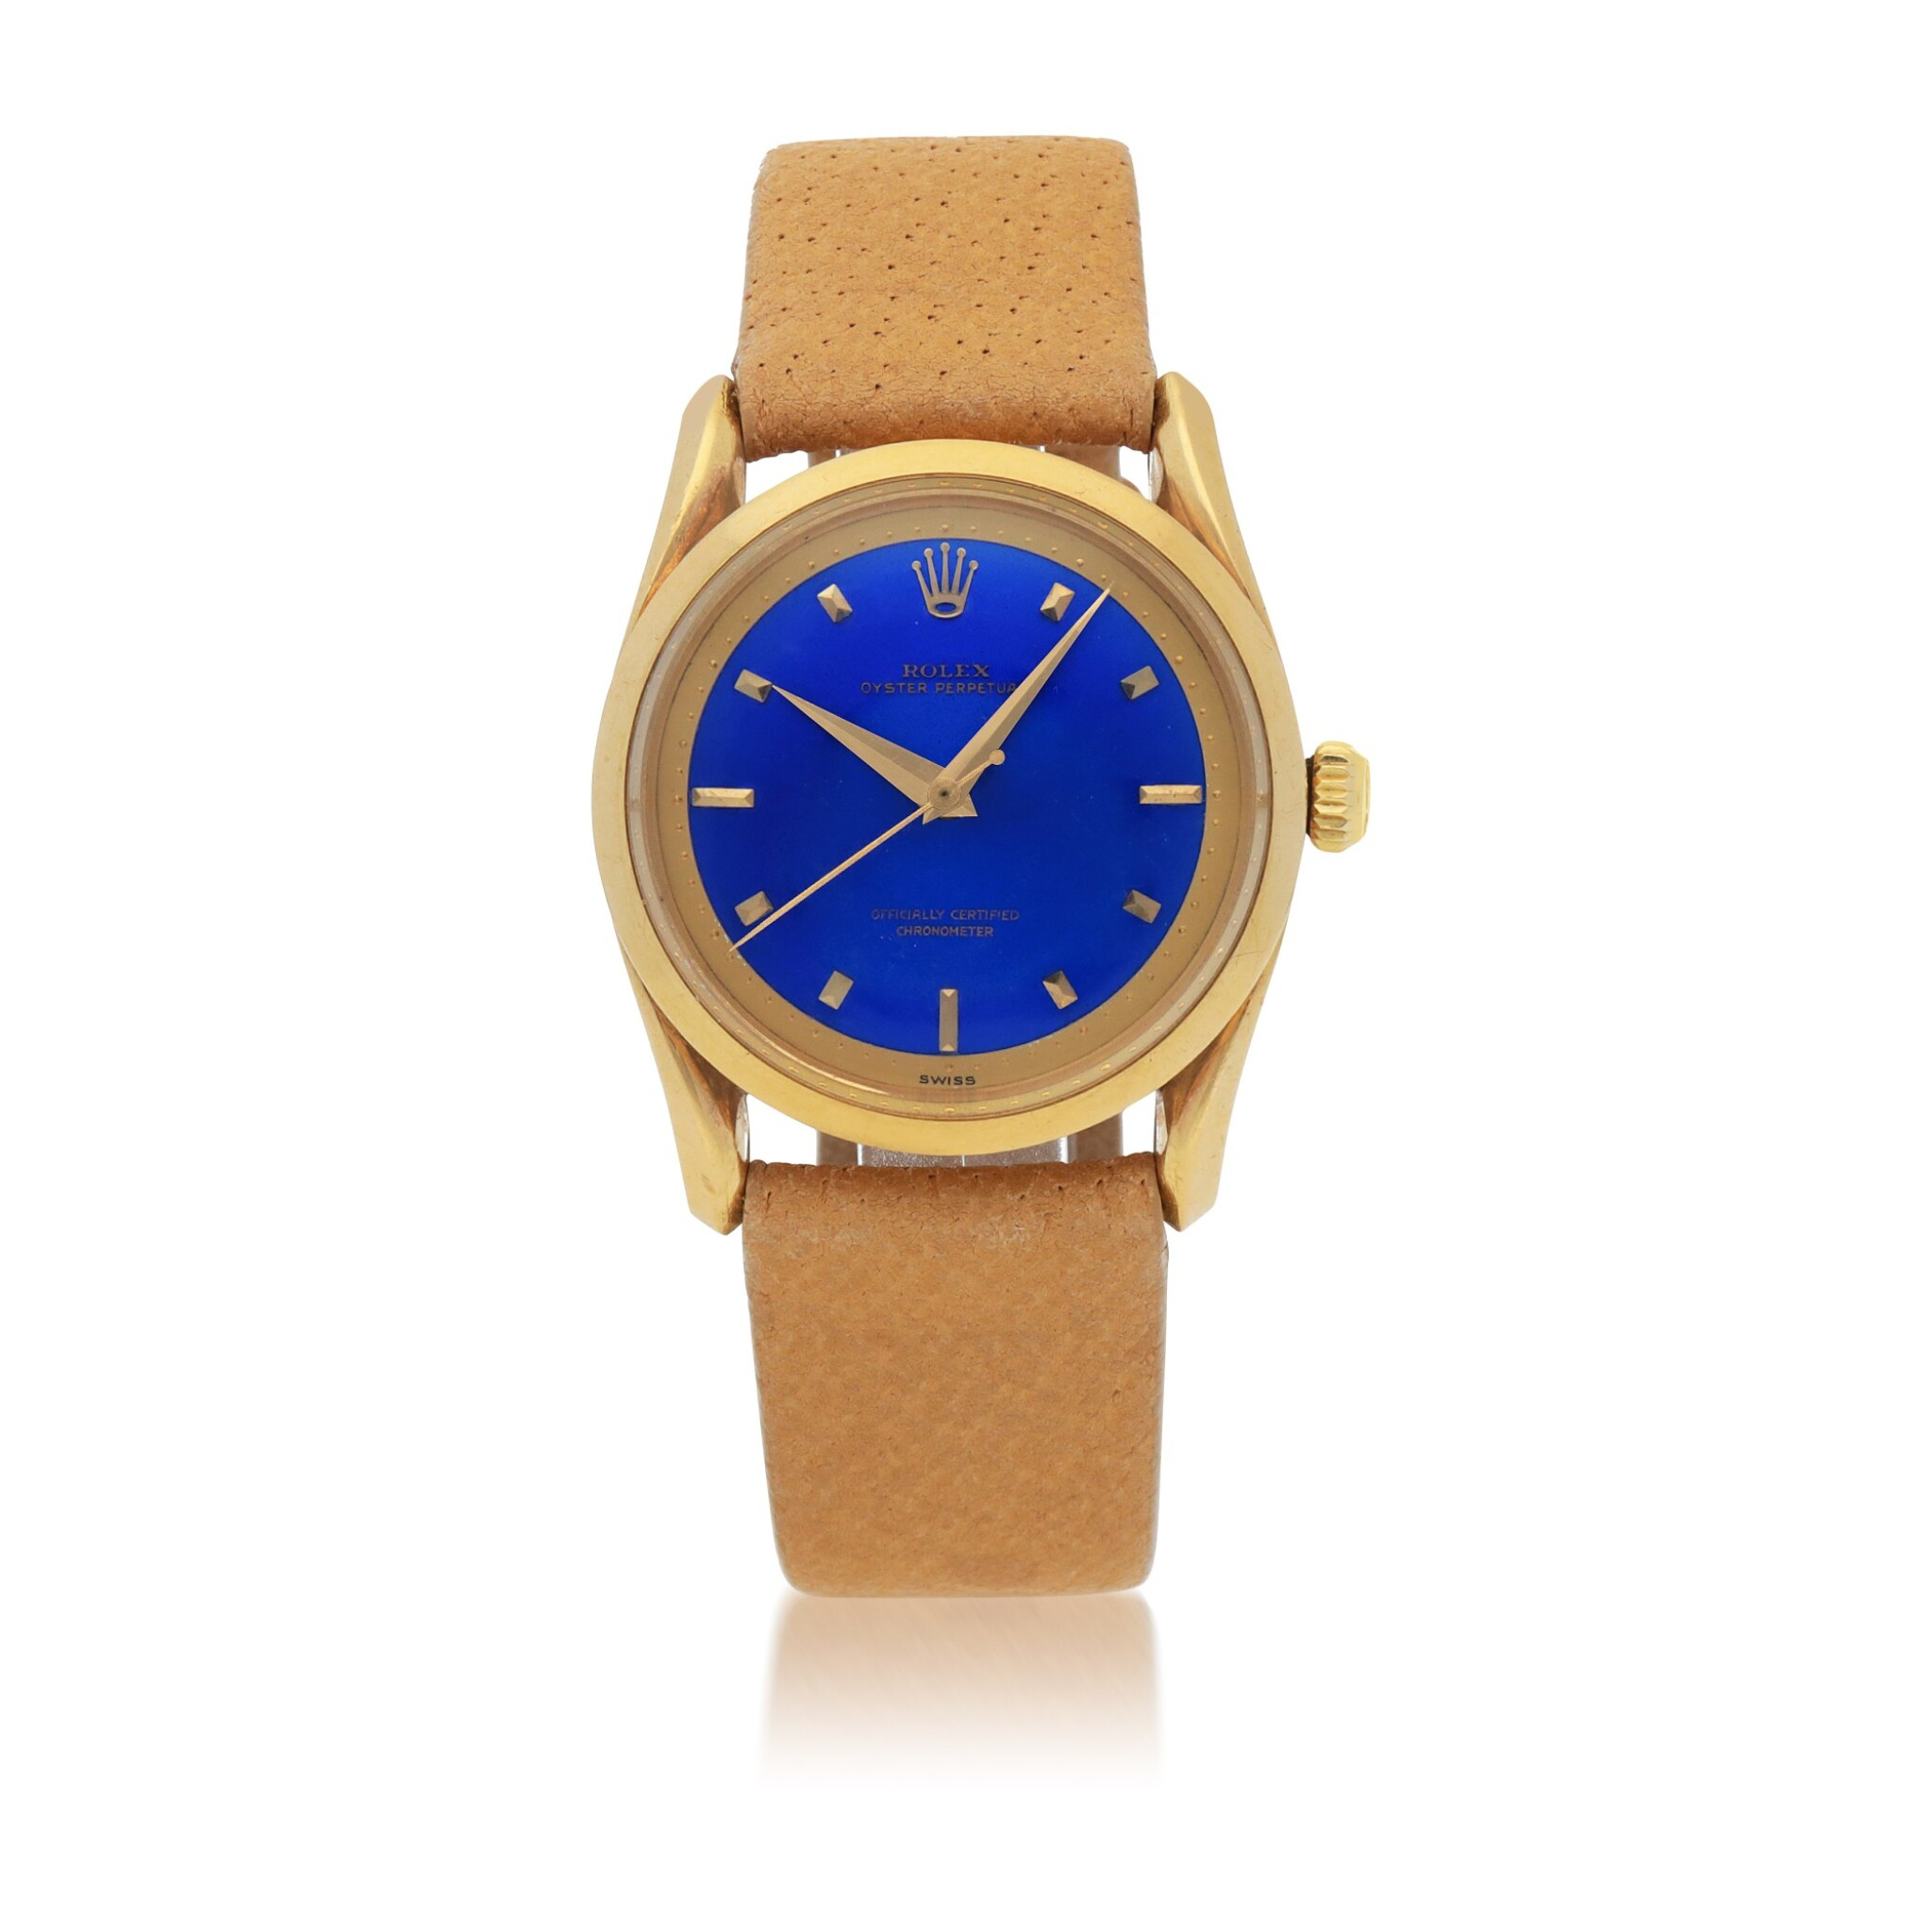 View full screen - View 1 of Lot 33. 'BOMBAY' REF 6290 YELLOW GOLD WRISTWATCH WITH FANCY LUGS AND BLUE ENAMEL DIAL CIRCA 1953 [勞力士6290型號「BOMBAY」黃金腕錶備藍色琺瑯錶盤,年份約1953].